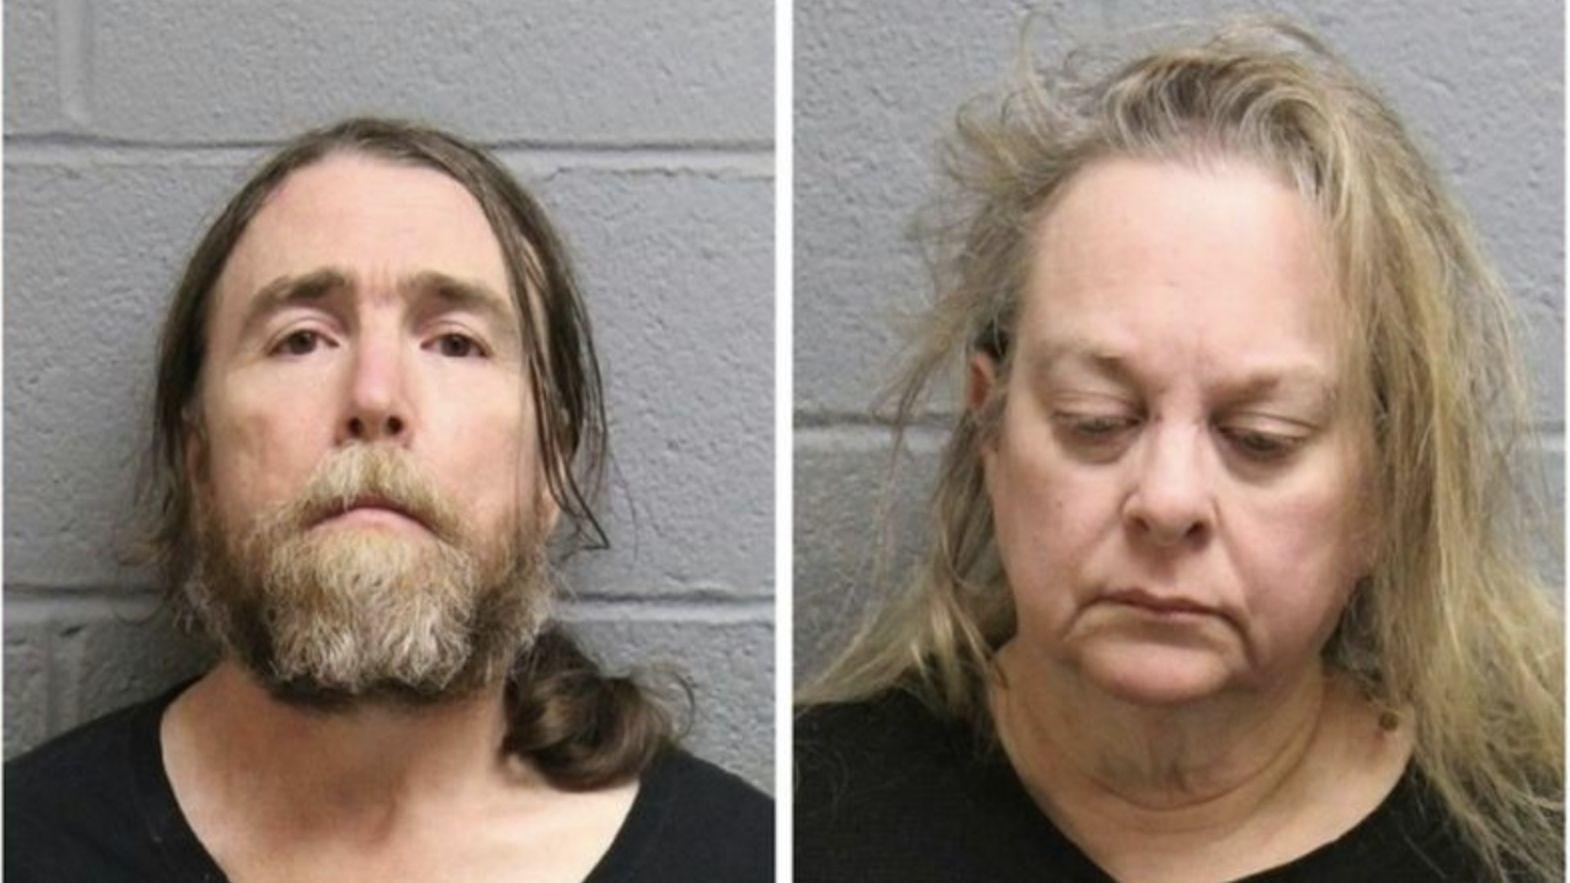 c663a0e9fa5 Suspects in Carroll County animal cruelty case held without bond  Humane  Society receiving many offers of help